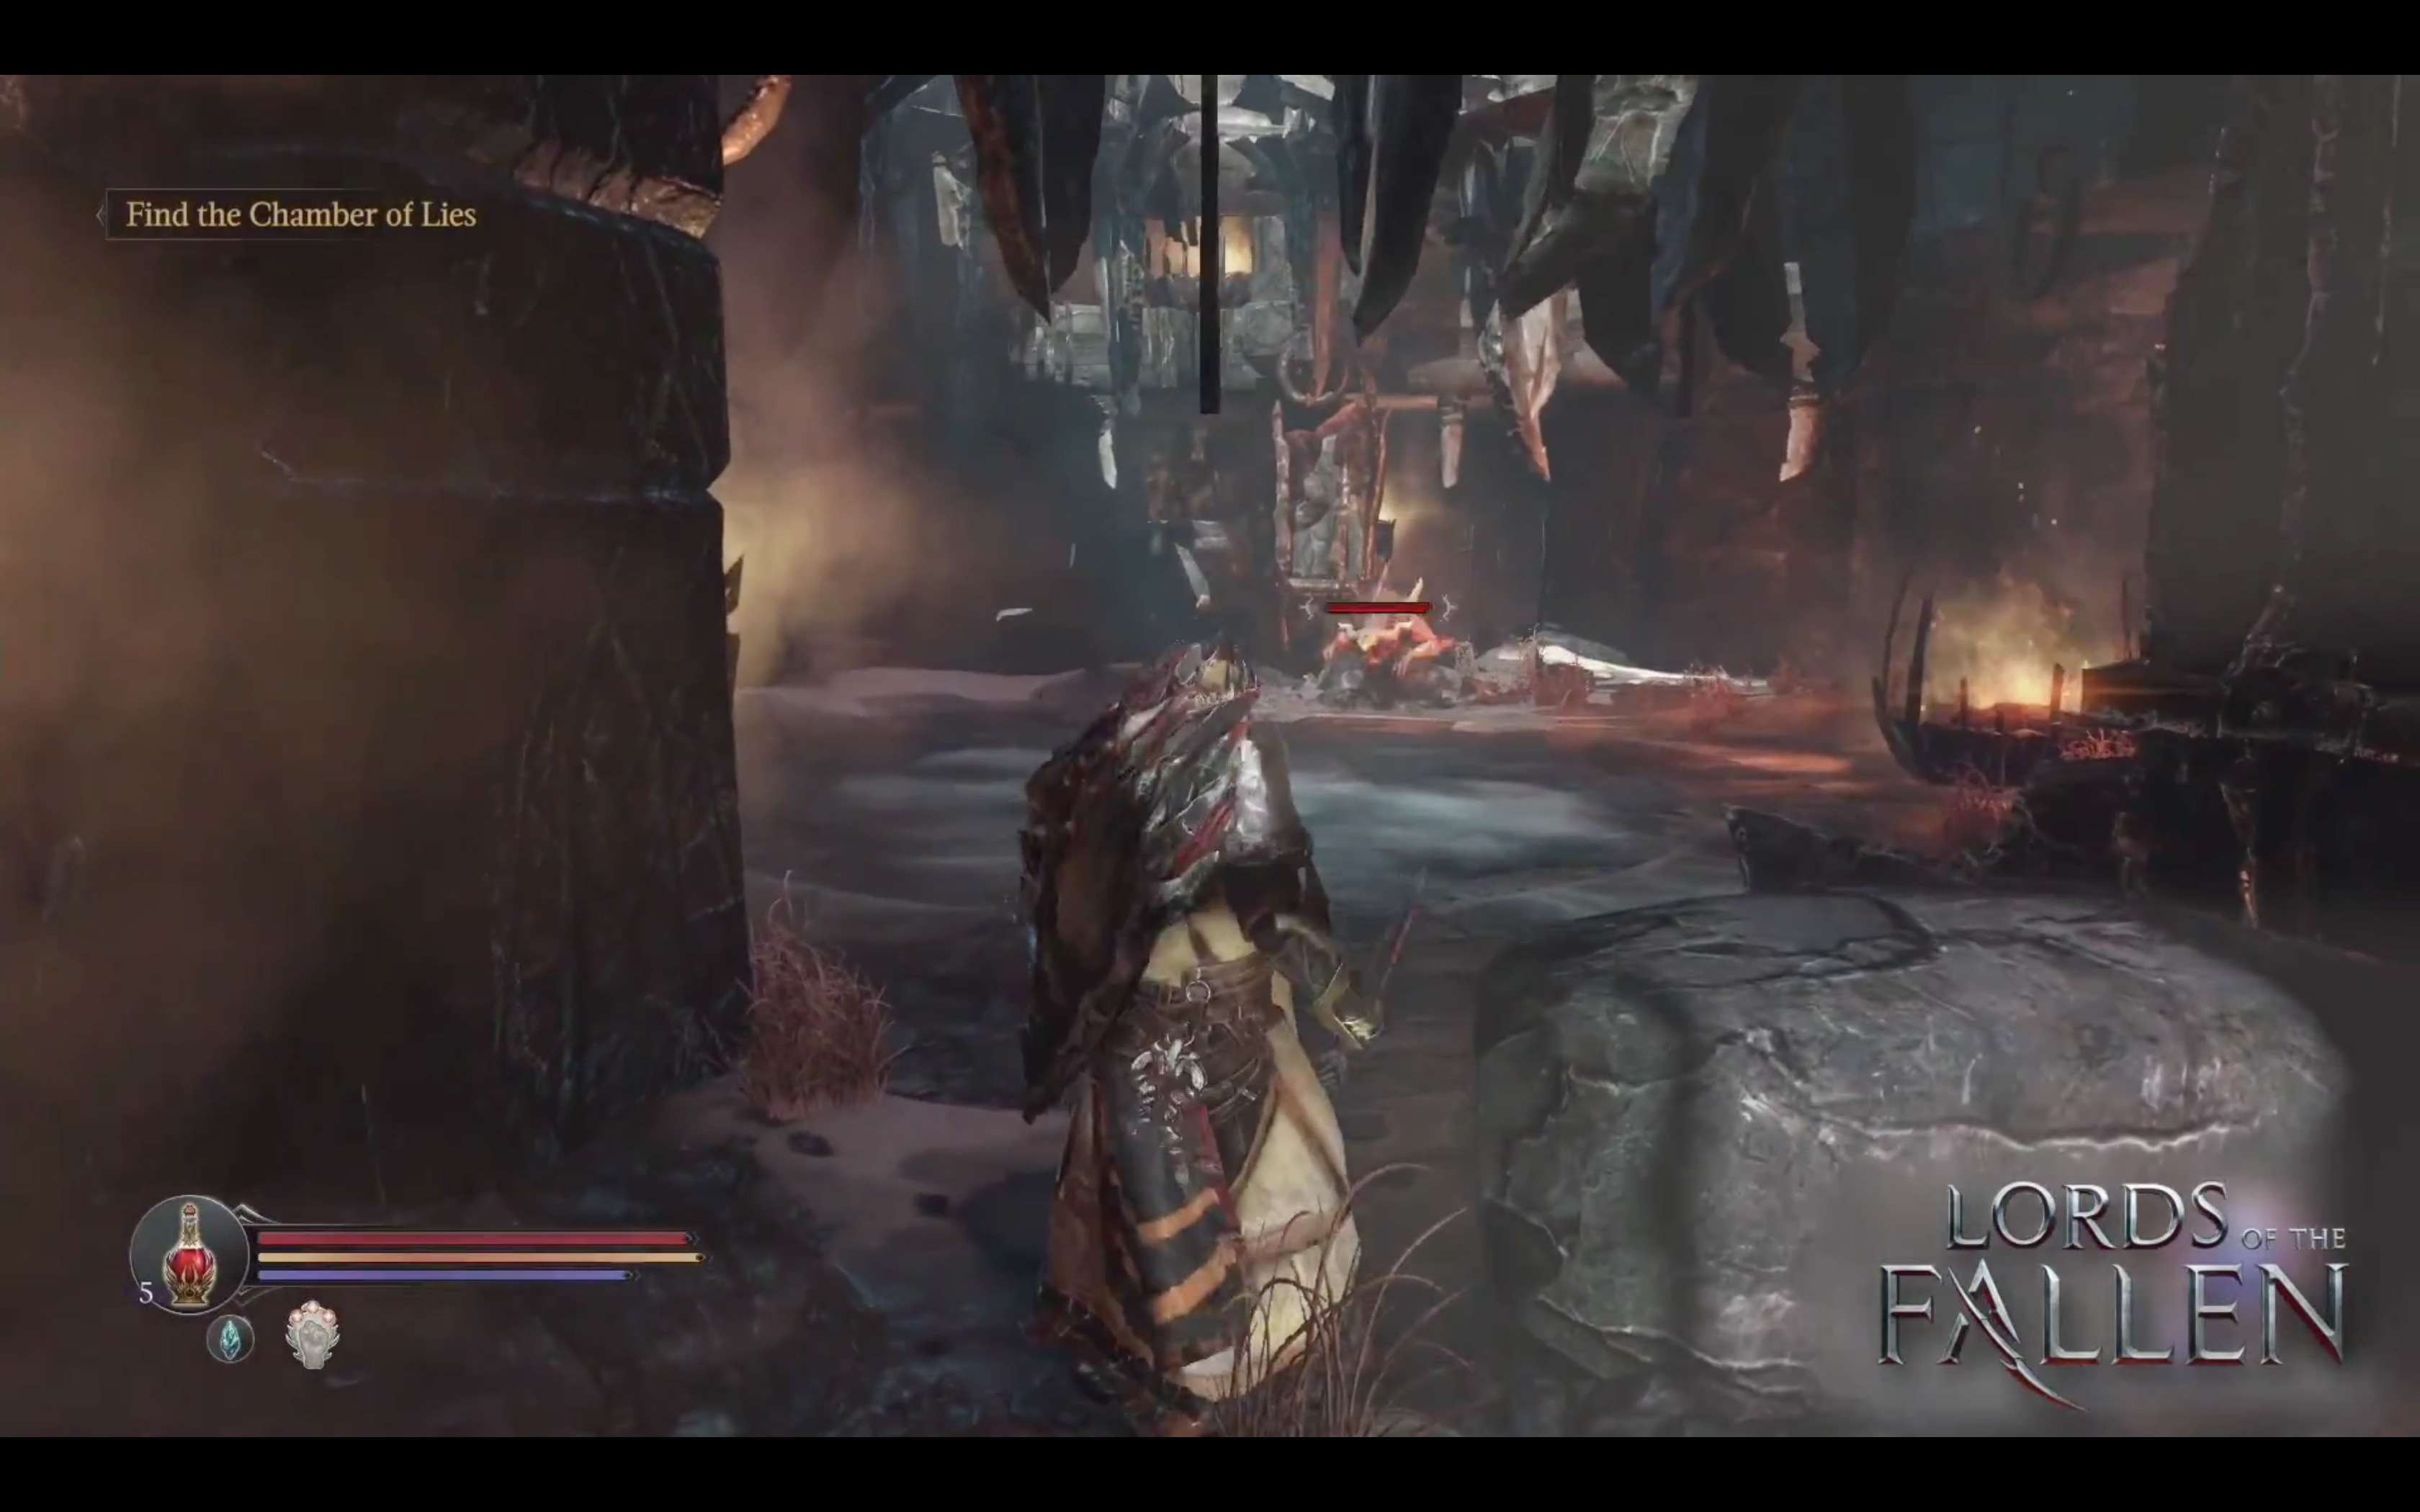 Lords-of-the-Fallen-Gameplay